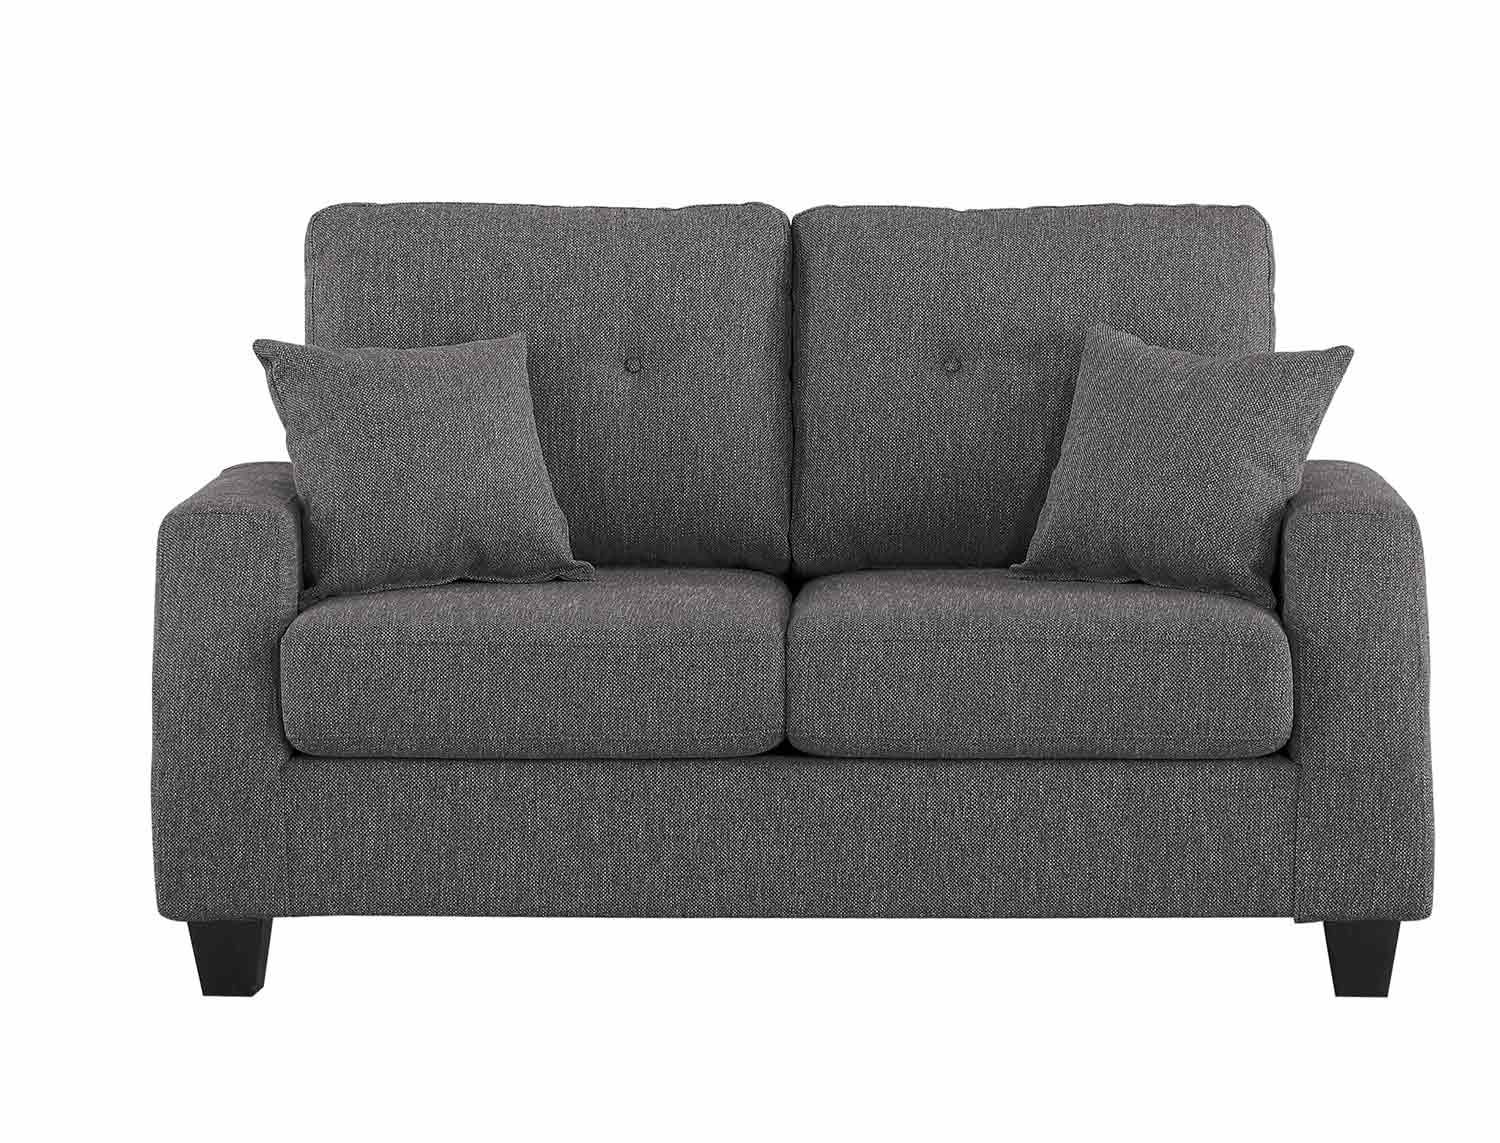 Homelegance Vossel Love Seat - Gray